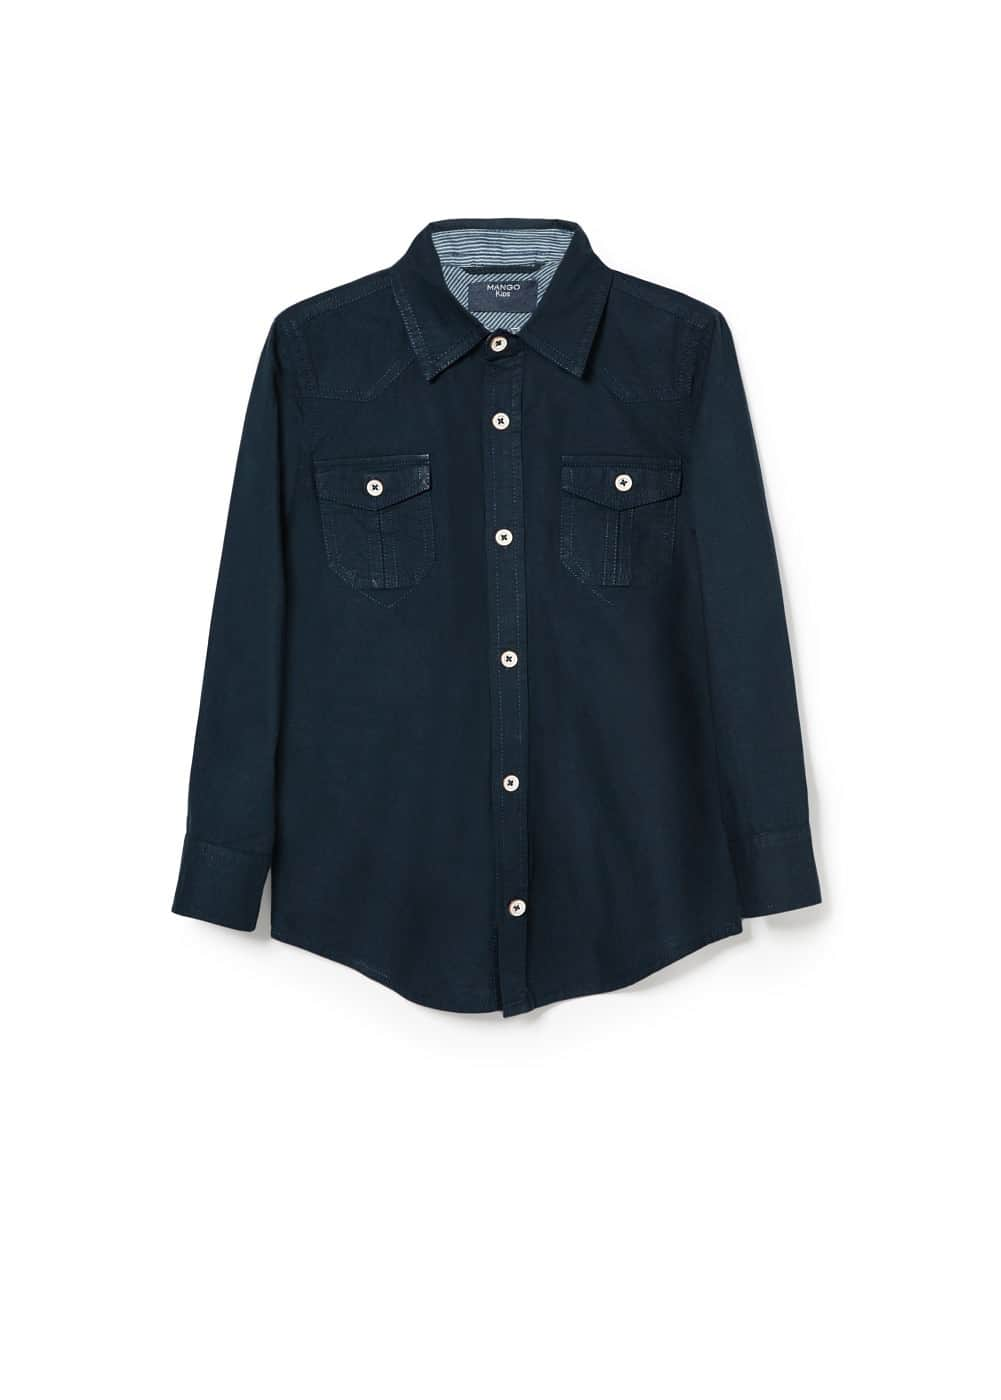 Two-pocket cotton shirt